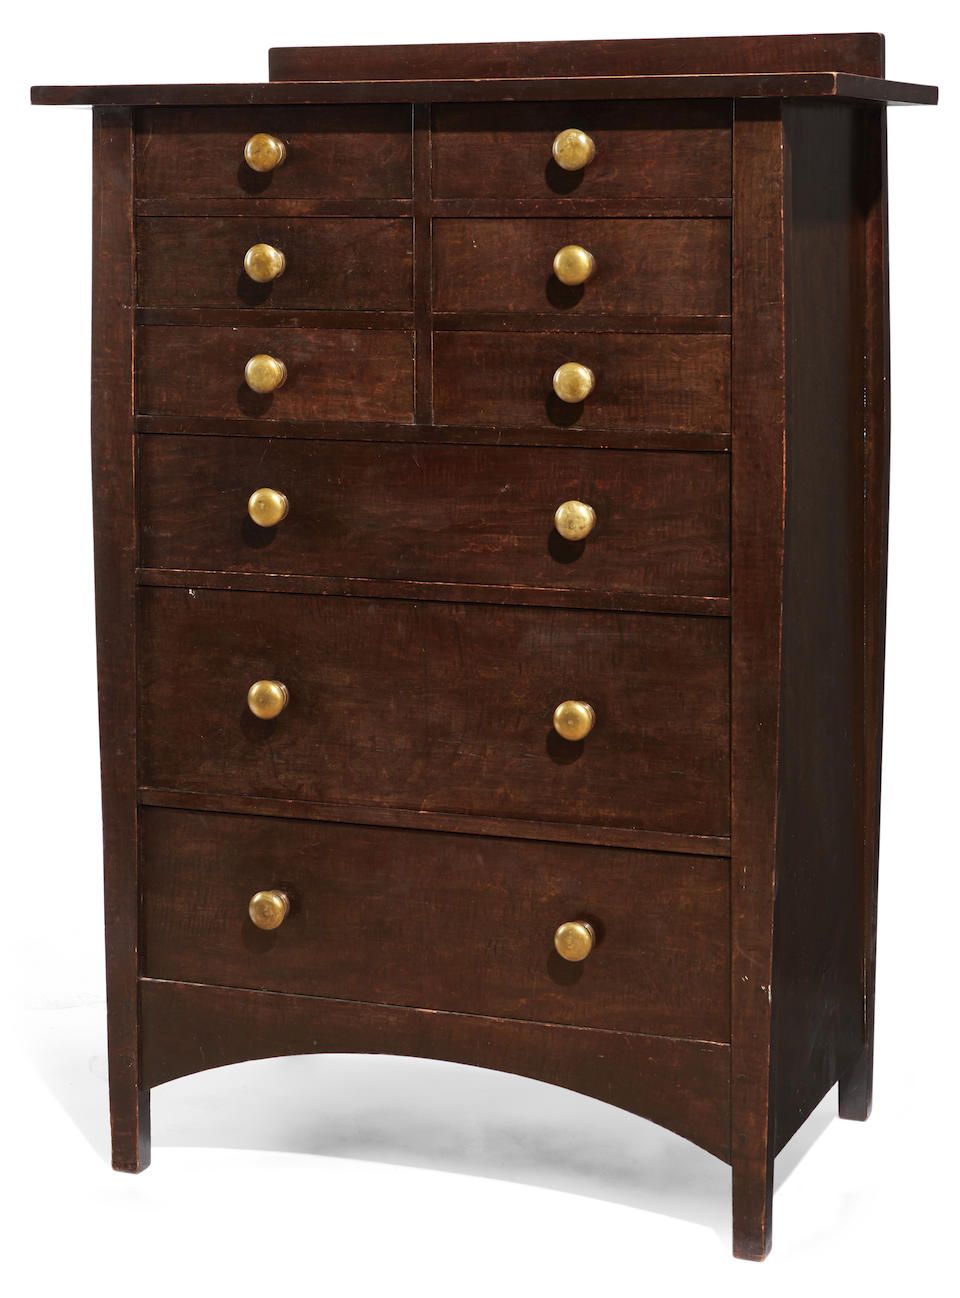 Harvey Ellis (1852-1904); After Chest of Drawerscirca 1910model no. 913, for the Craftsman Workshops of Gustav Stickley, Eastwood, New York, stained curly maple, inlaid with copper and fruitwoods, bronze pulls, faint paper labelheight 50 1/2 (128cm); width 36in (91cm); depth 20in (51cm)